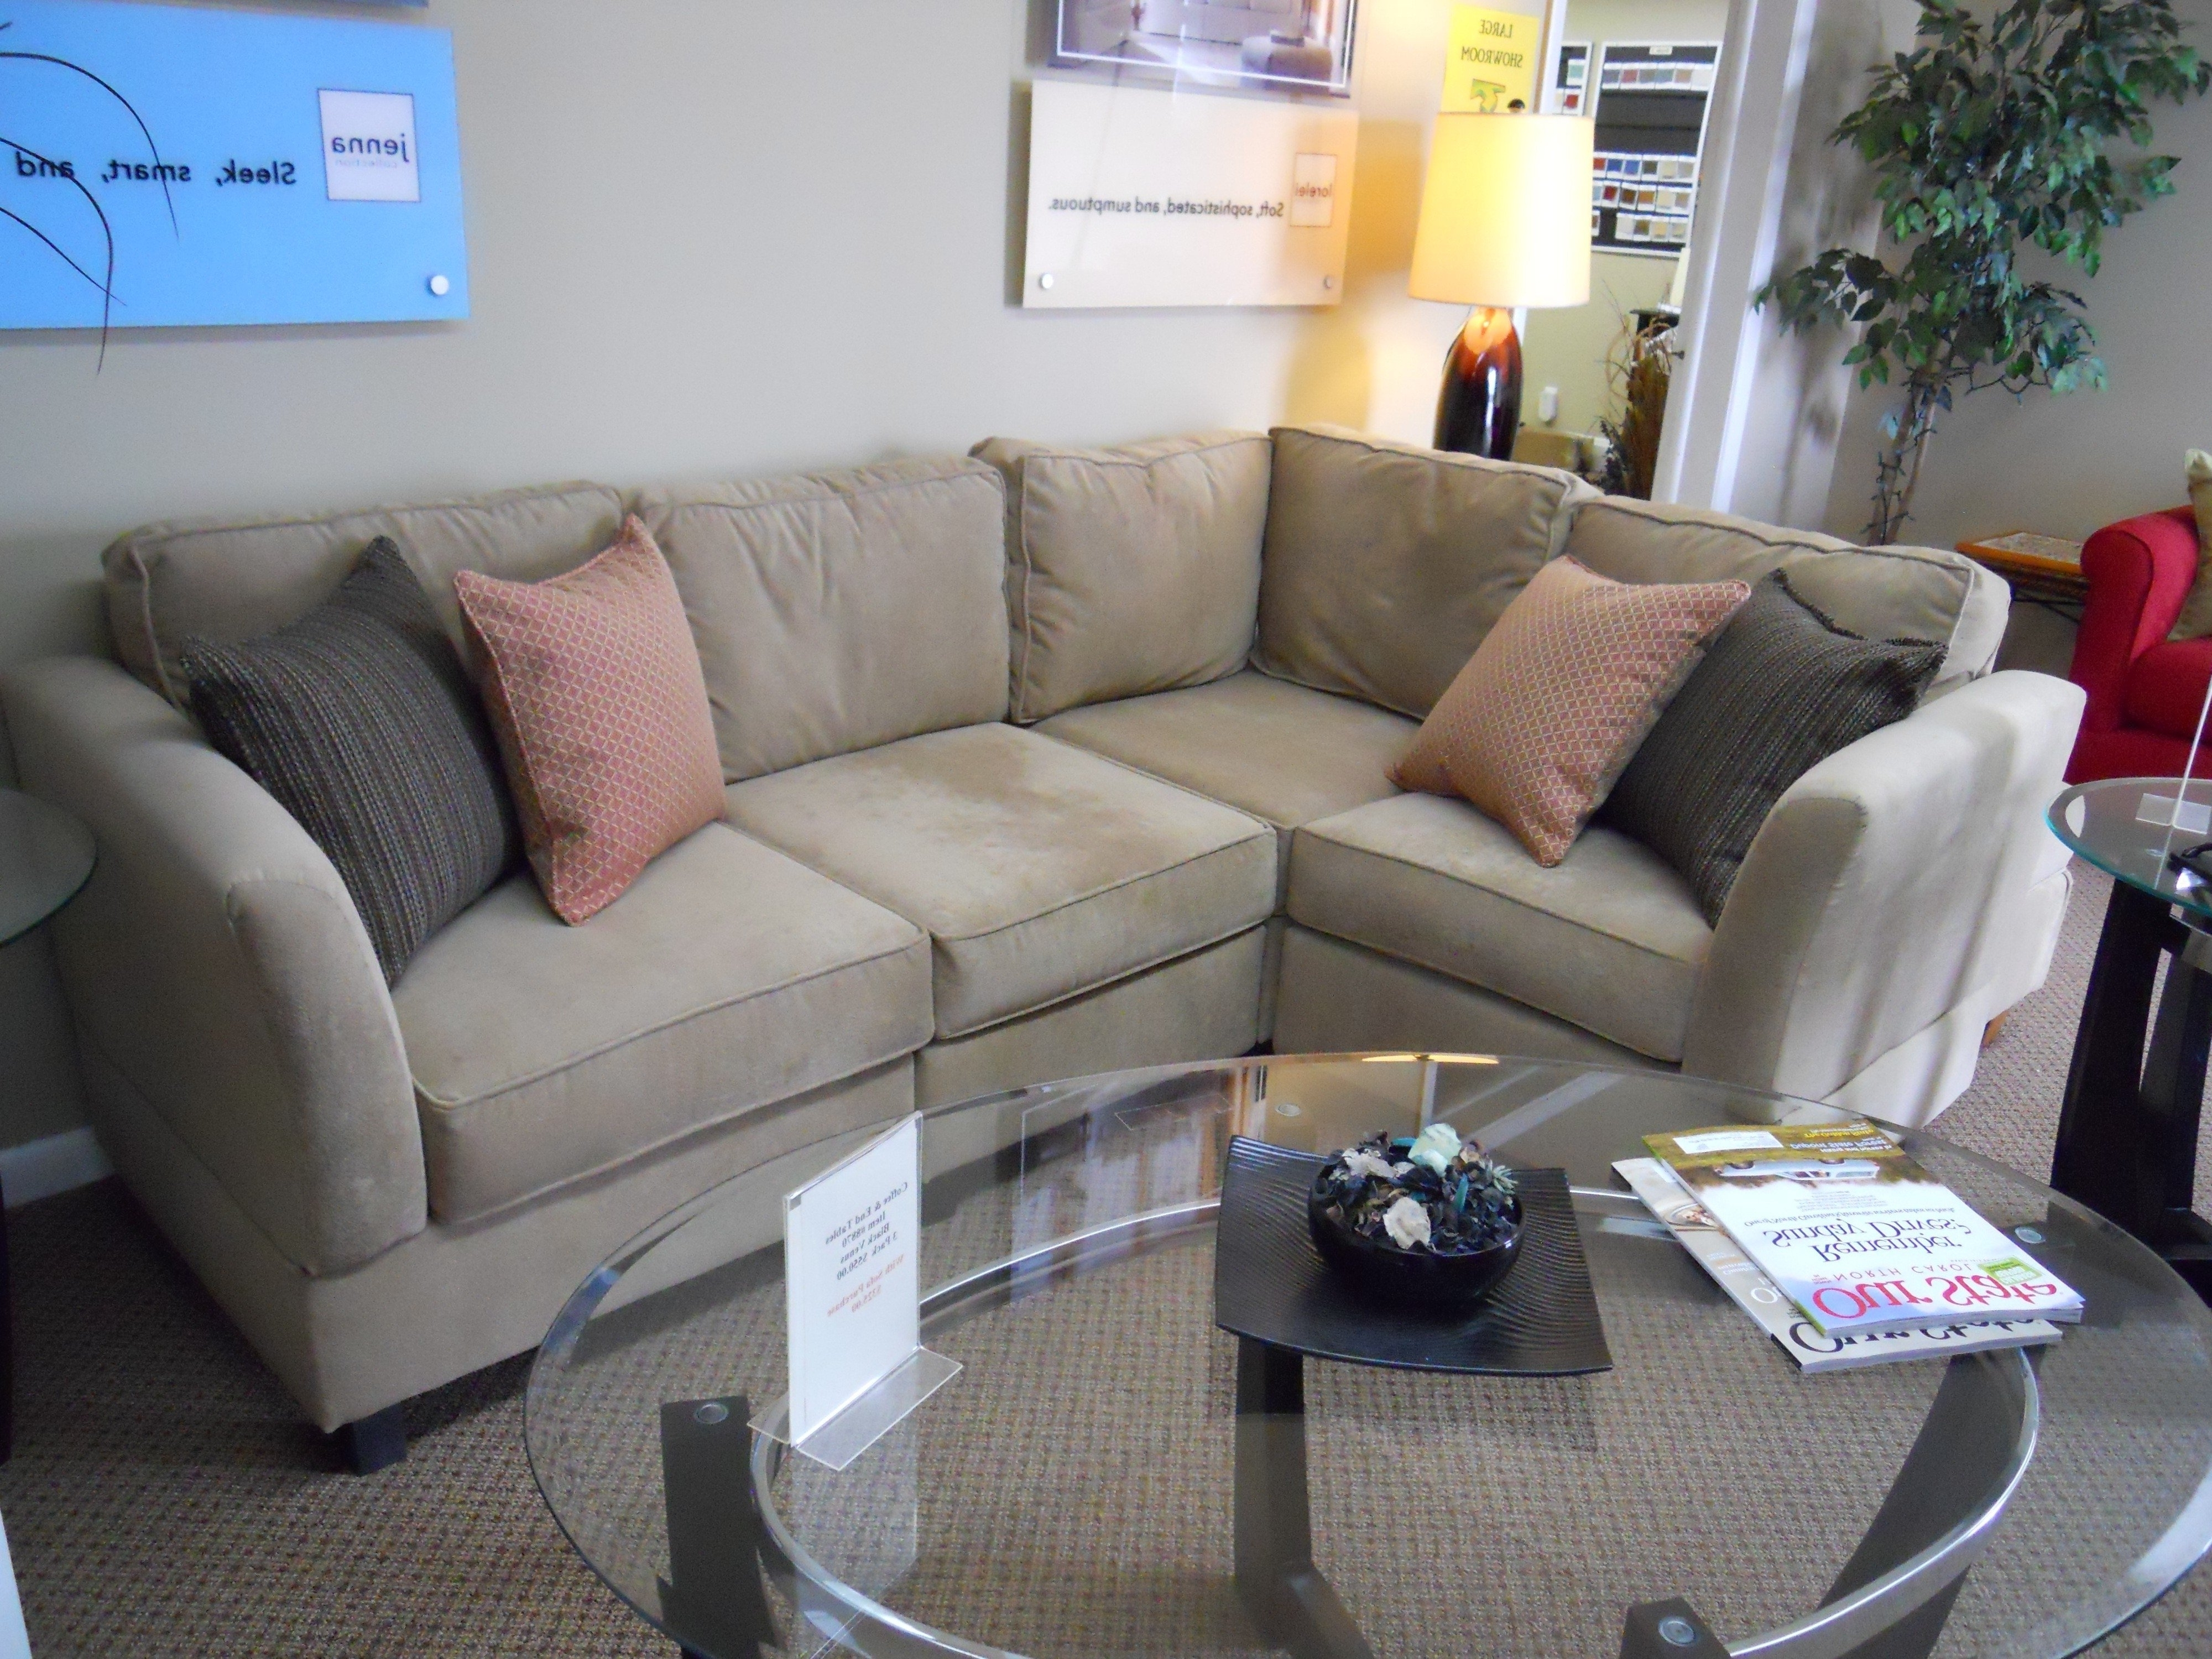 Reclining Sectional Sofas For Small Spaces W Script With Small Regarding Most Up To Date Sectional Sofas In Small Spaces (View 4 of 15)